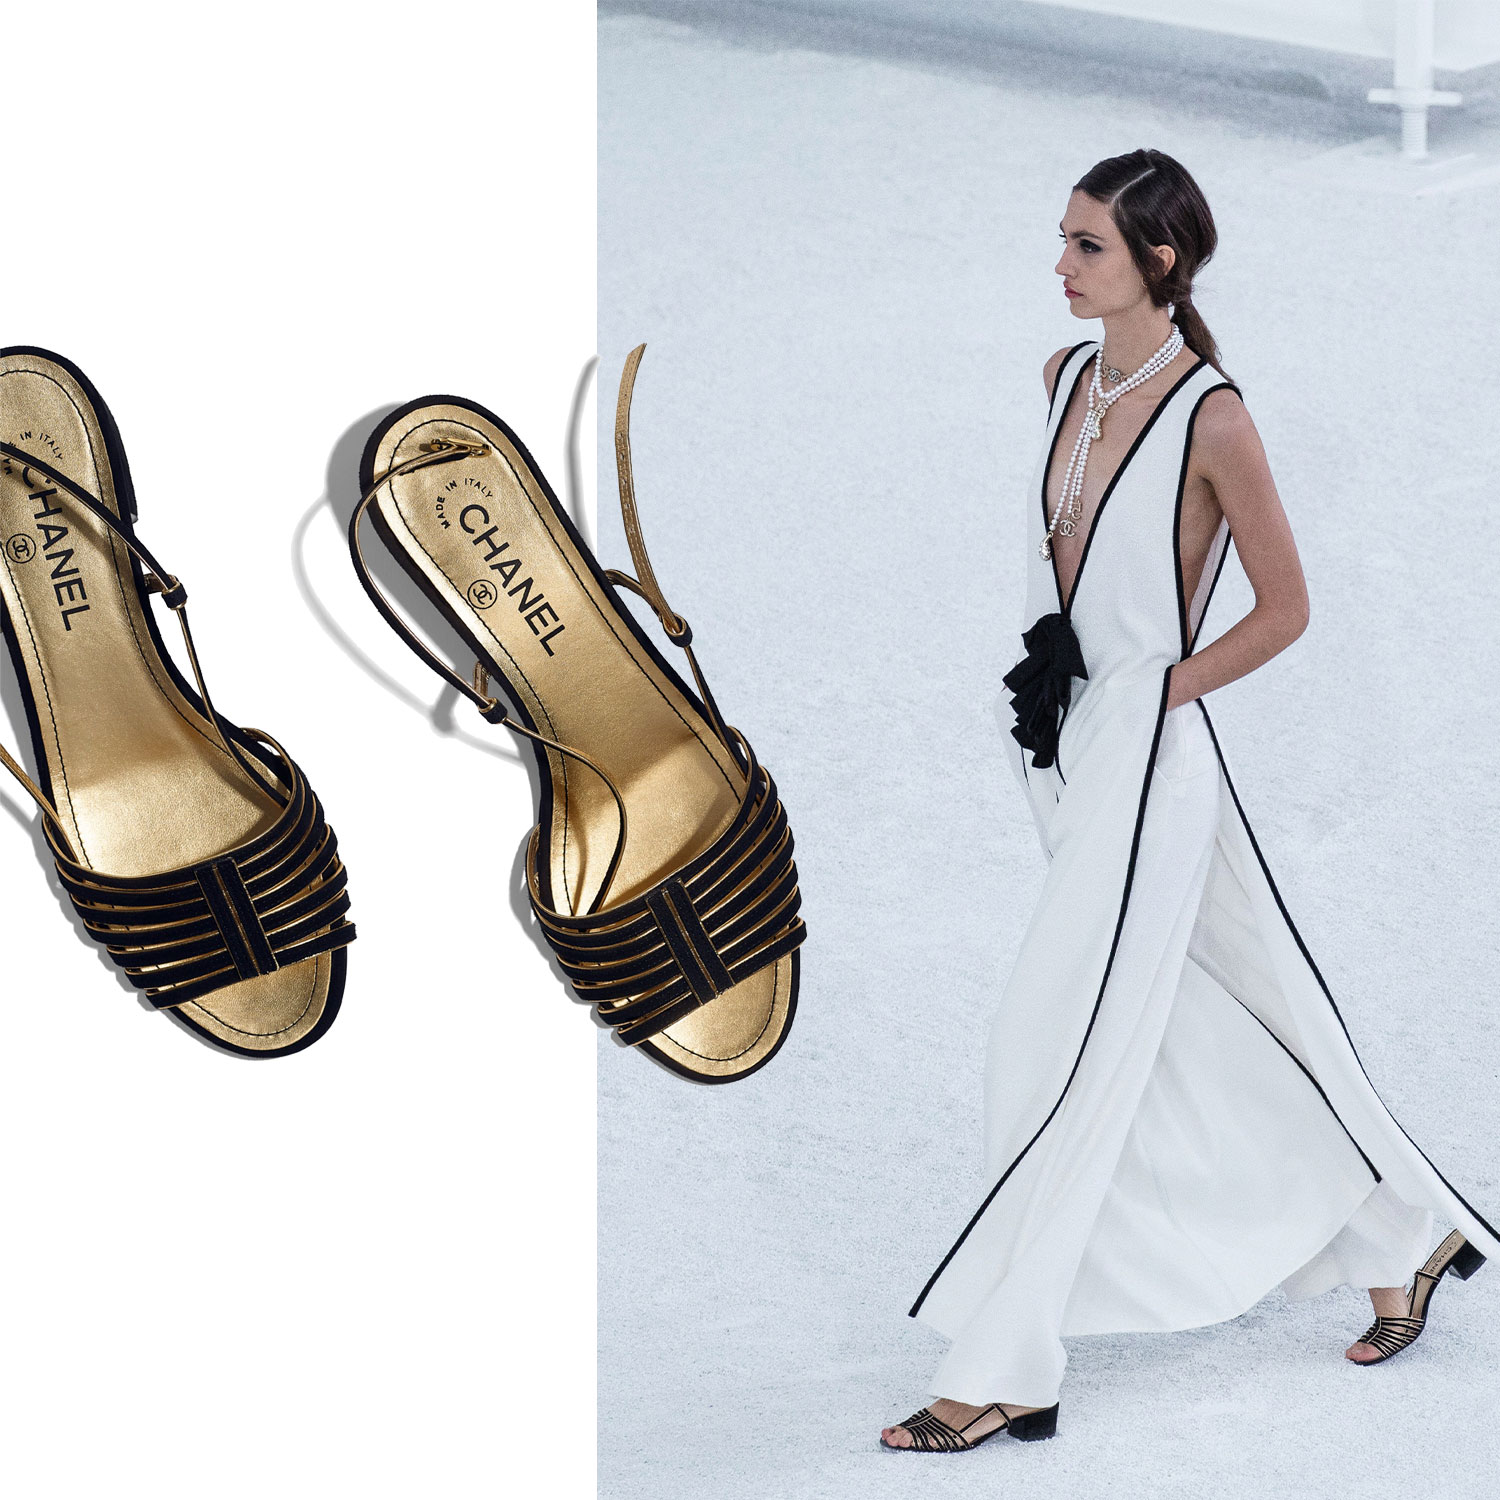 CHANEL SANDALS ON MY WISHLIST